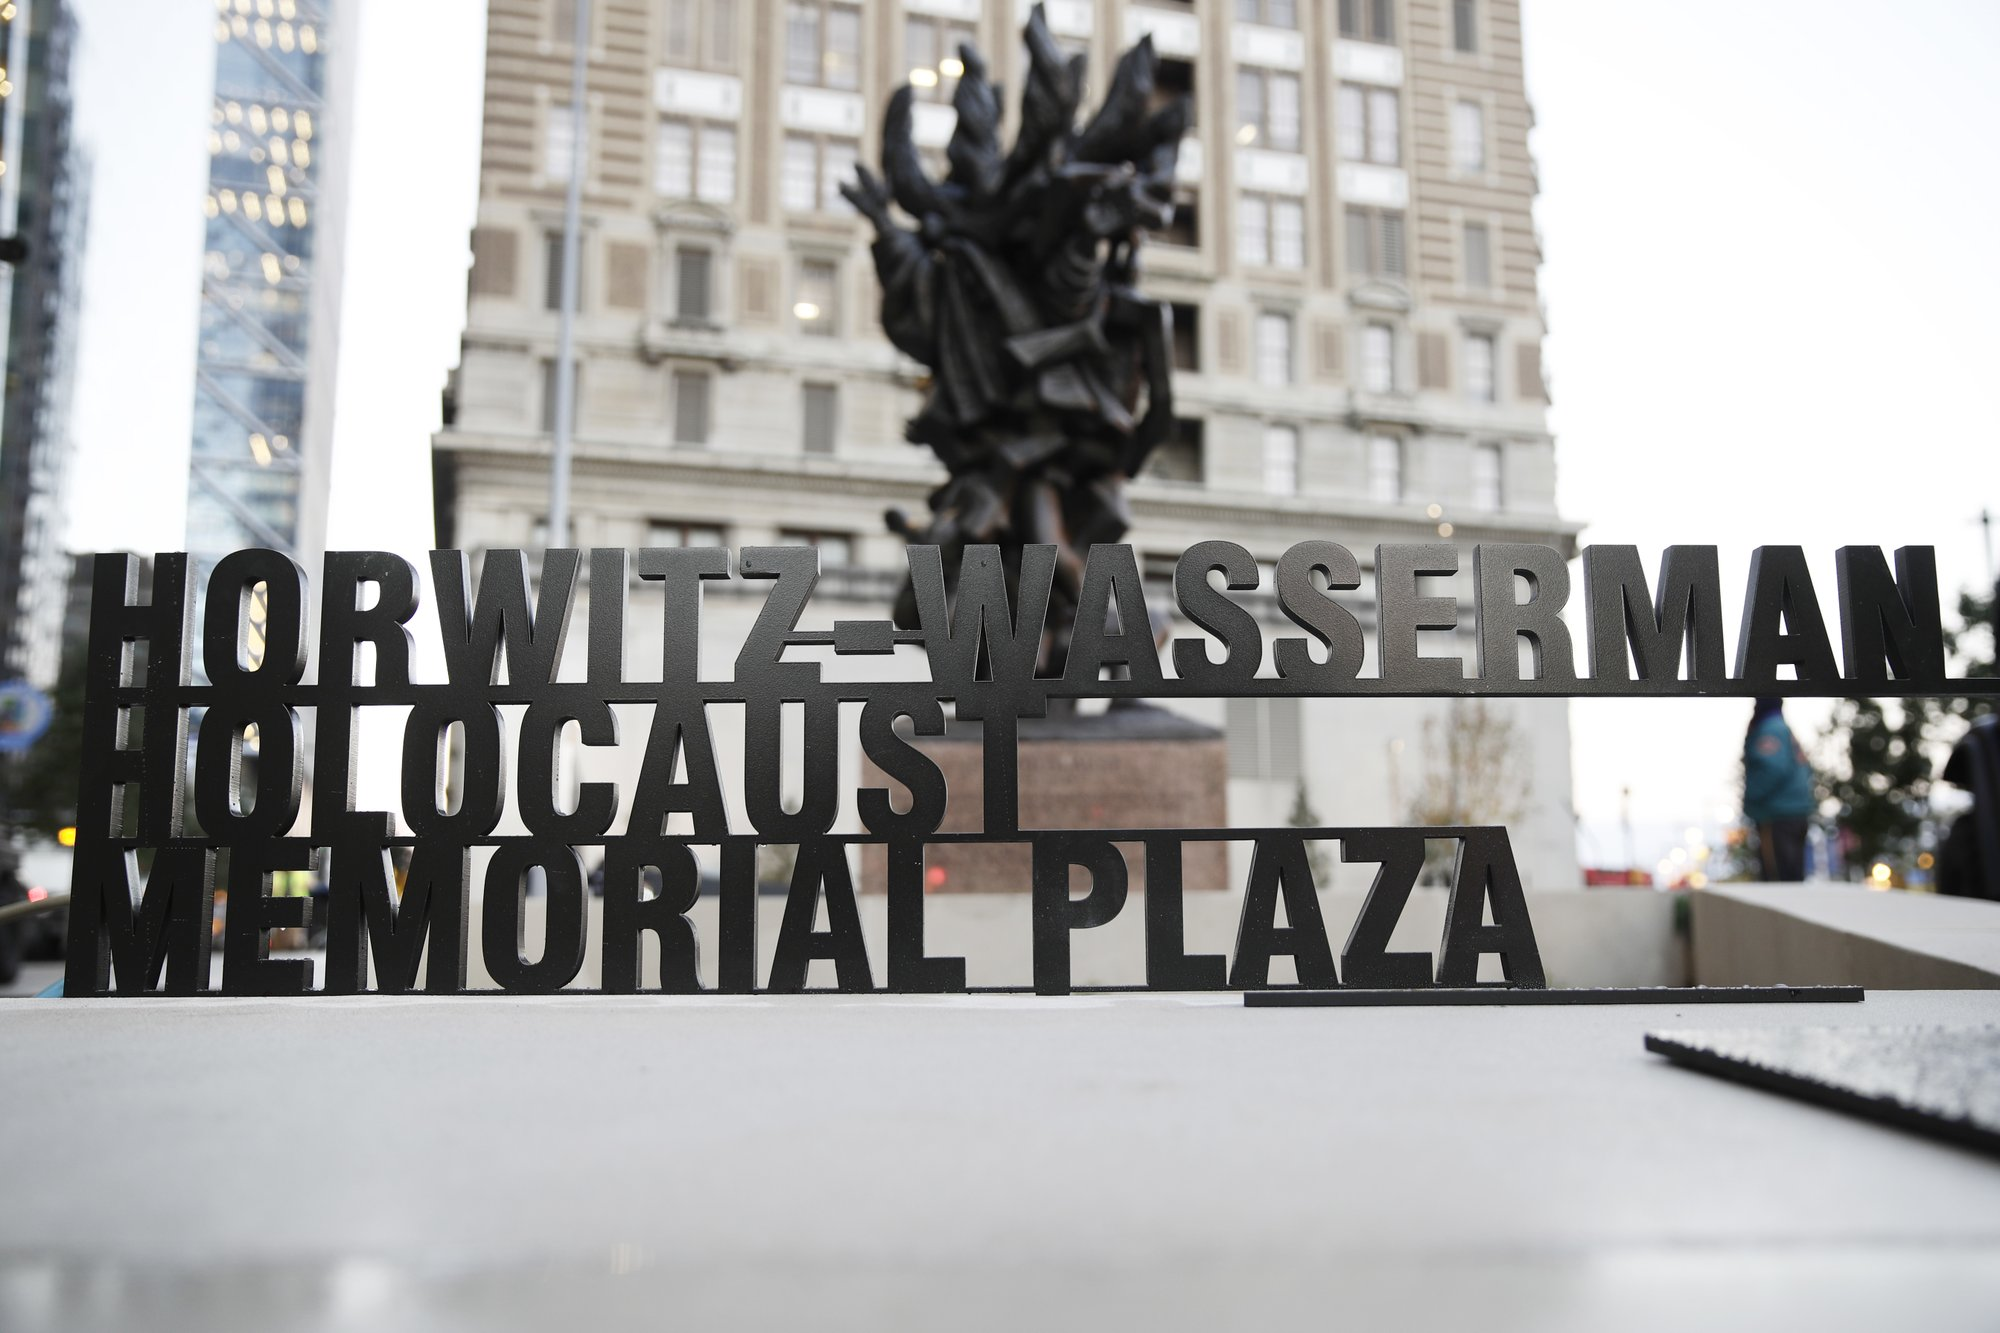 1st Holocaust memorial in US merges past with new technology